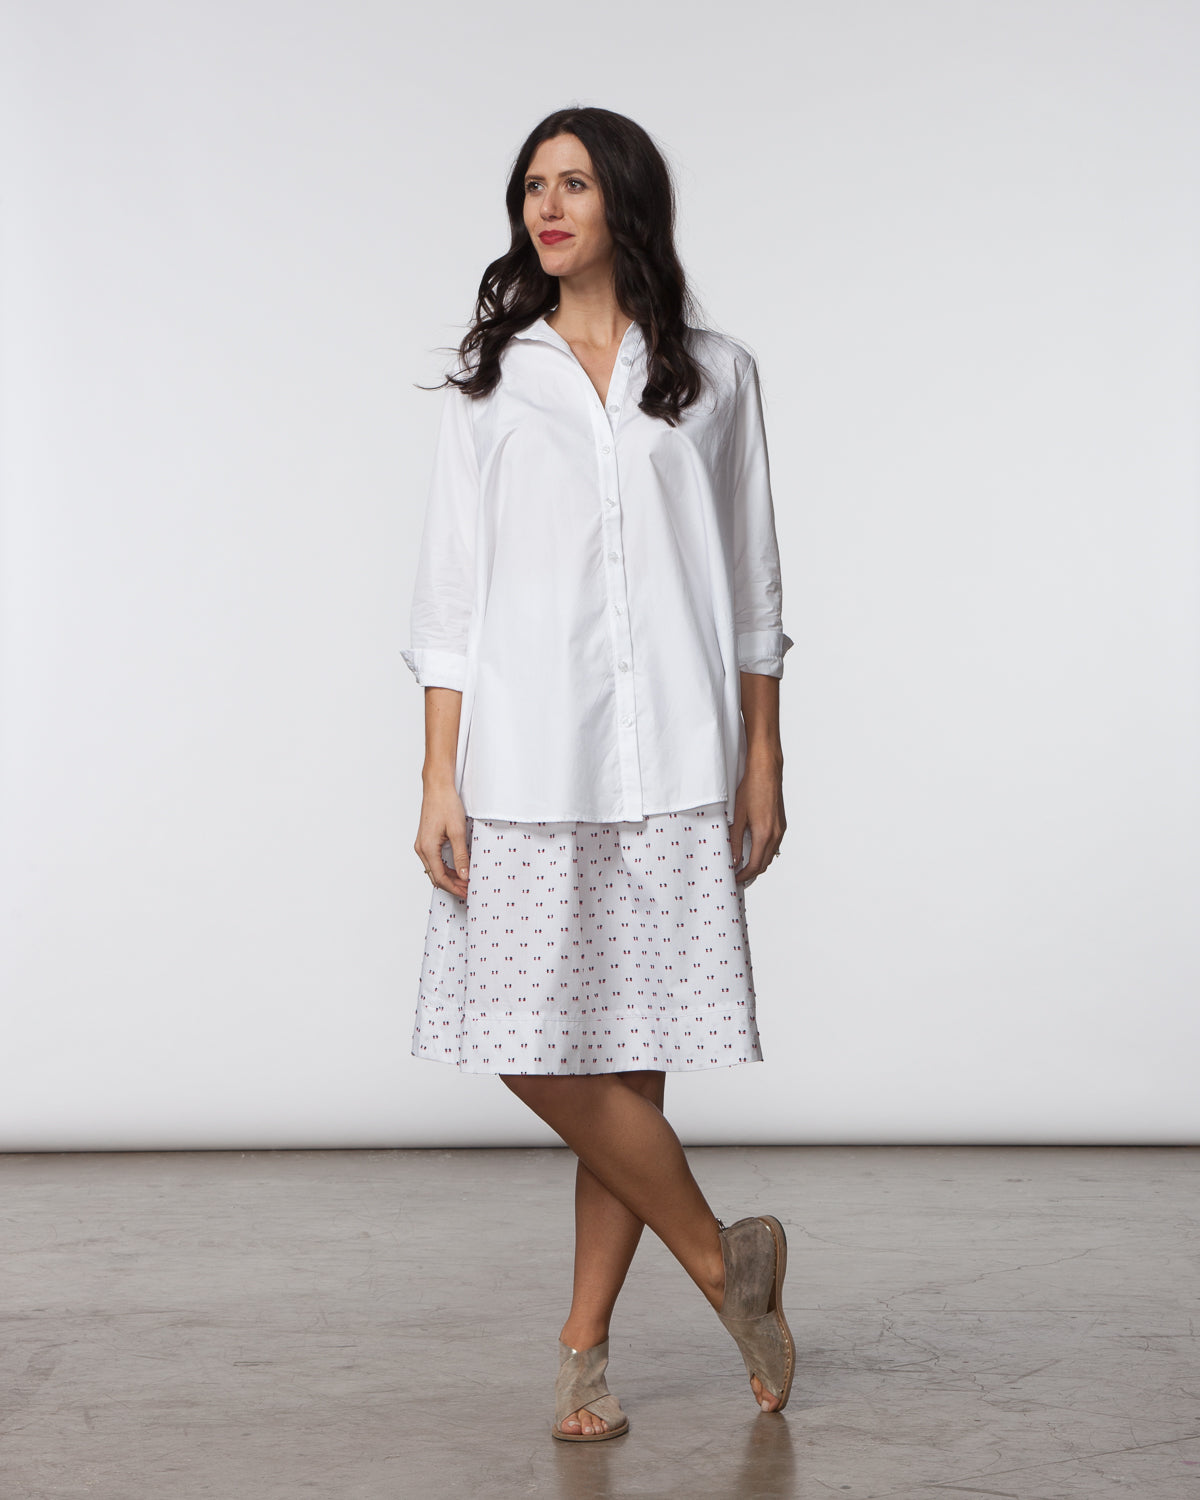 Carl Top - White Poplin